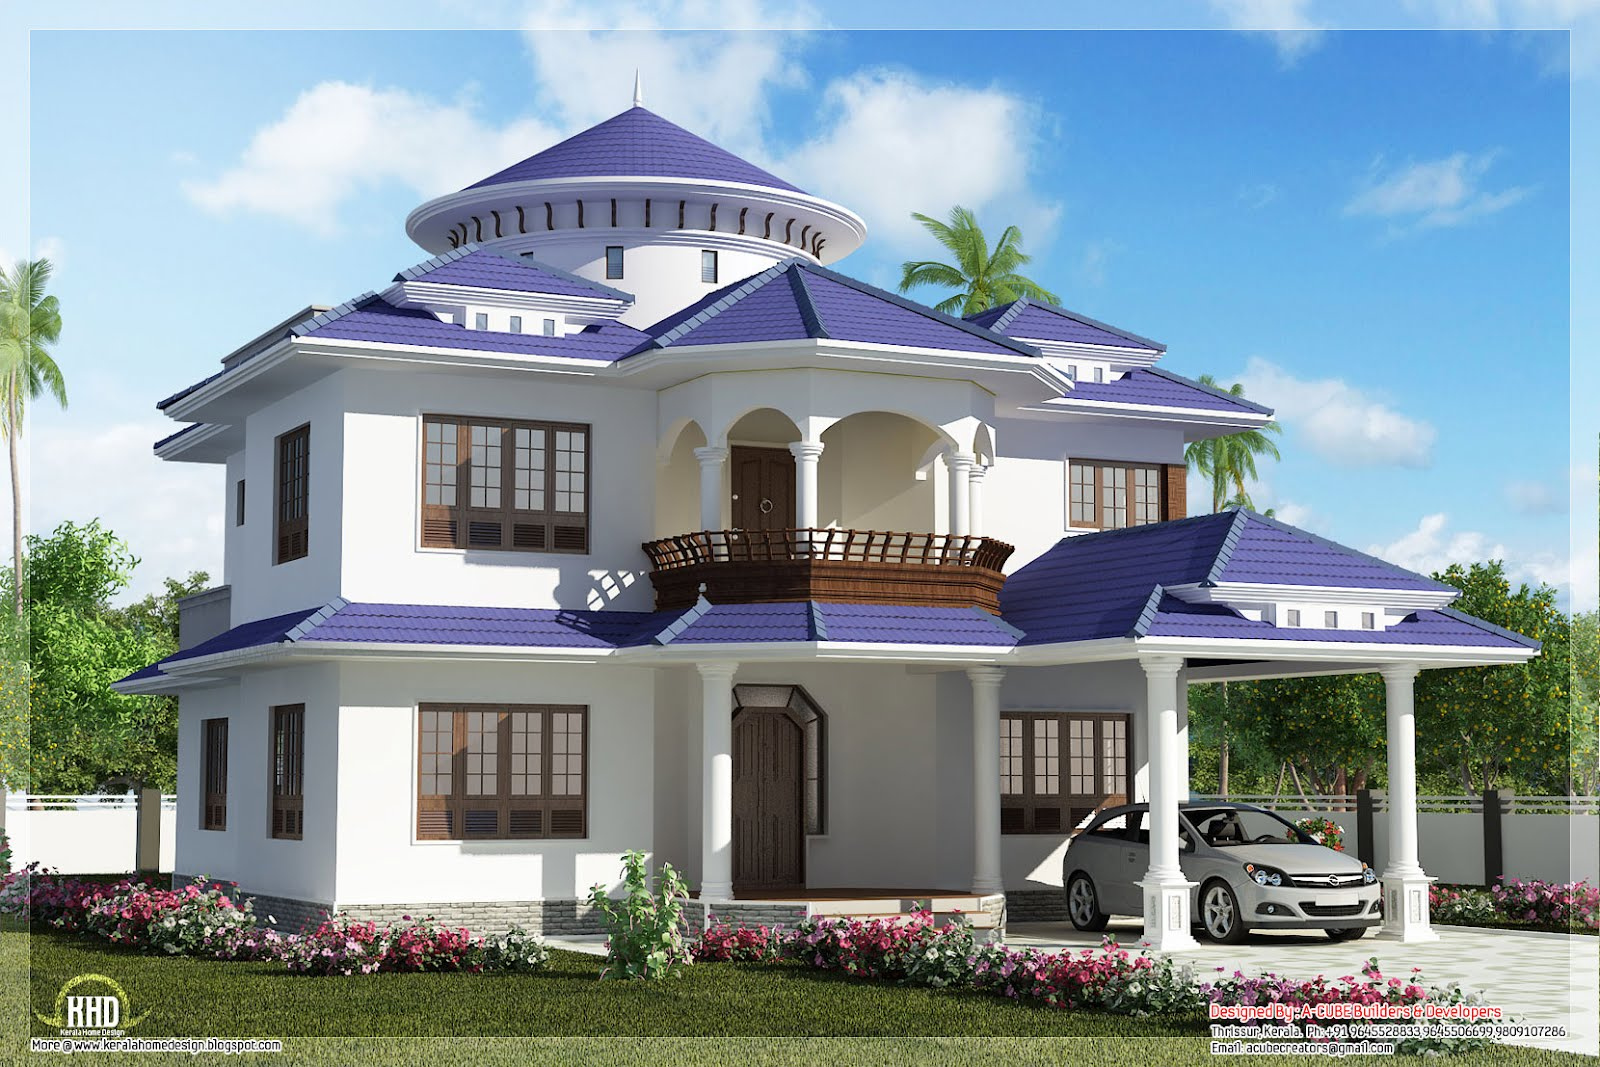 modern dream house exterior designs - Design Dream Homes